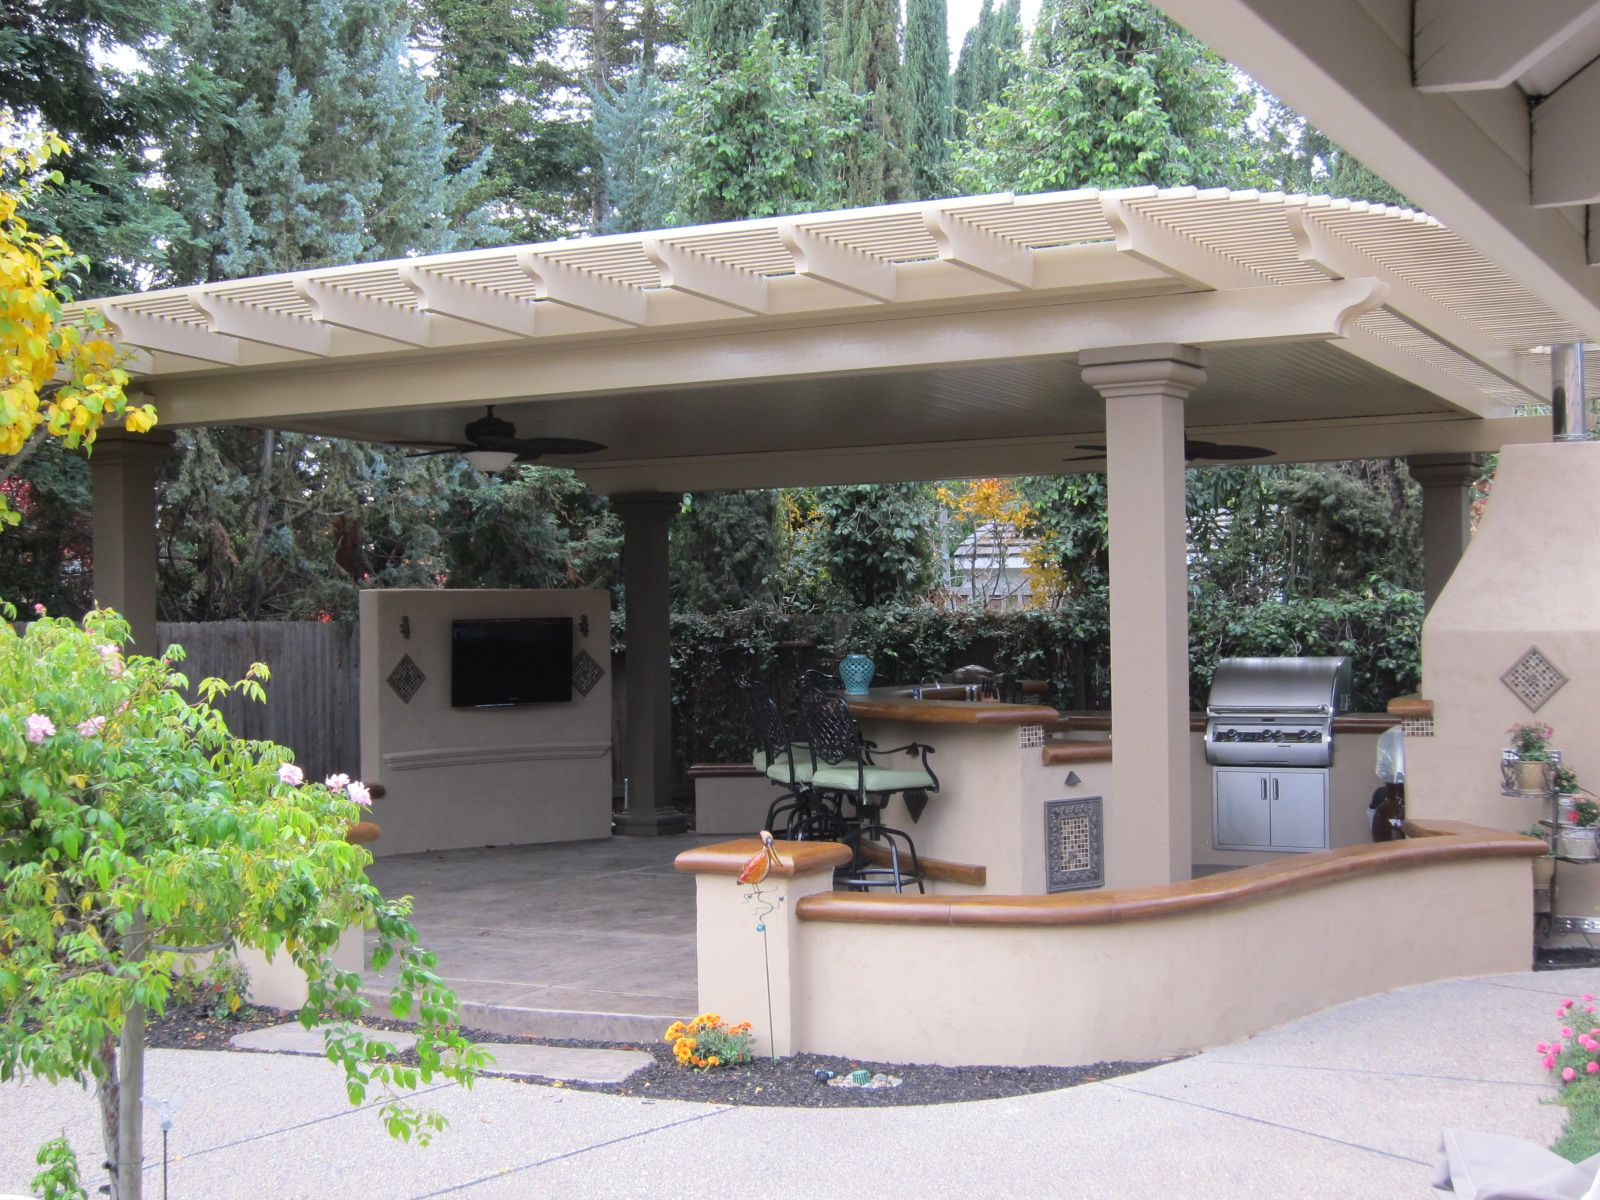 Charmant Amazing Free Standing Patio Cover Freestanding Patio Covers Sacramento Patio  Covers Home Decorating Ideas